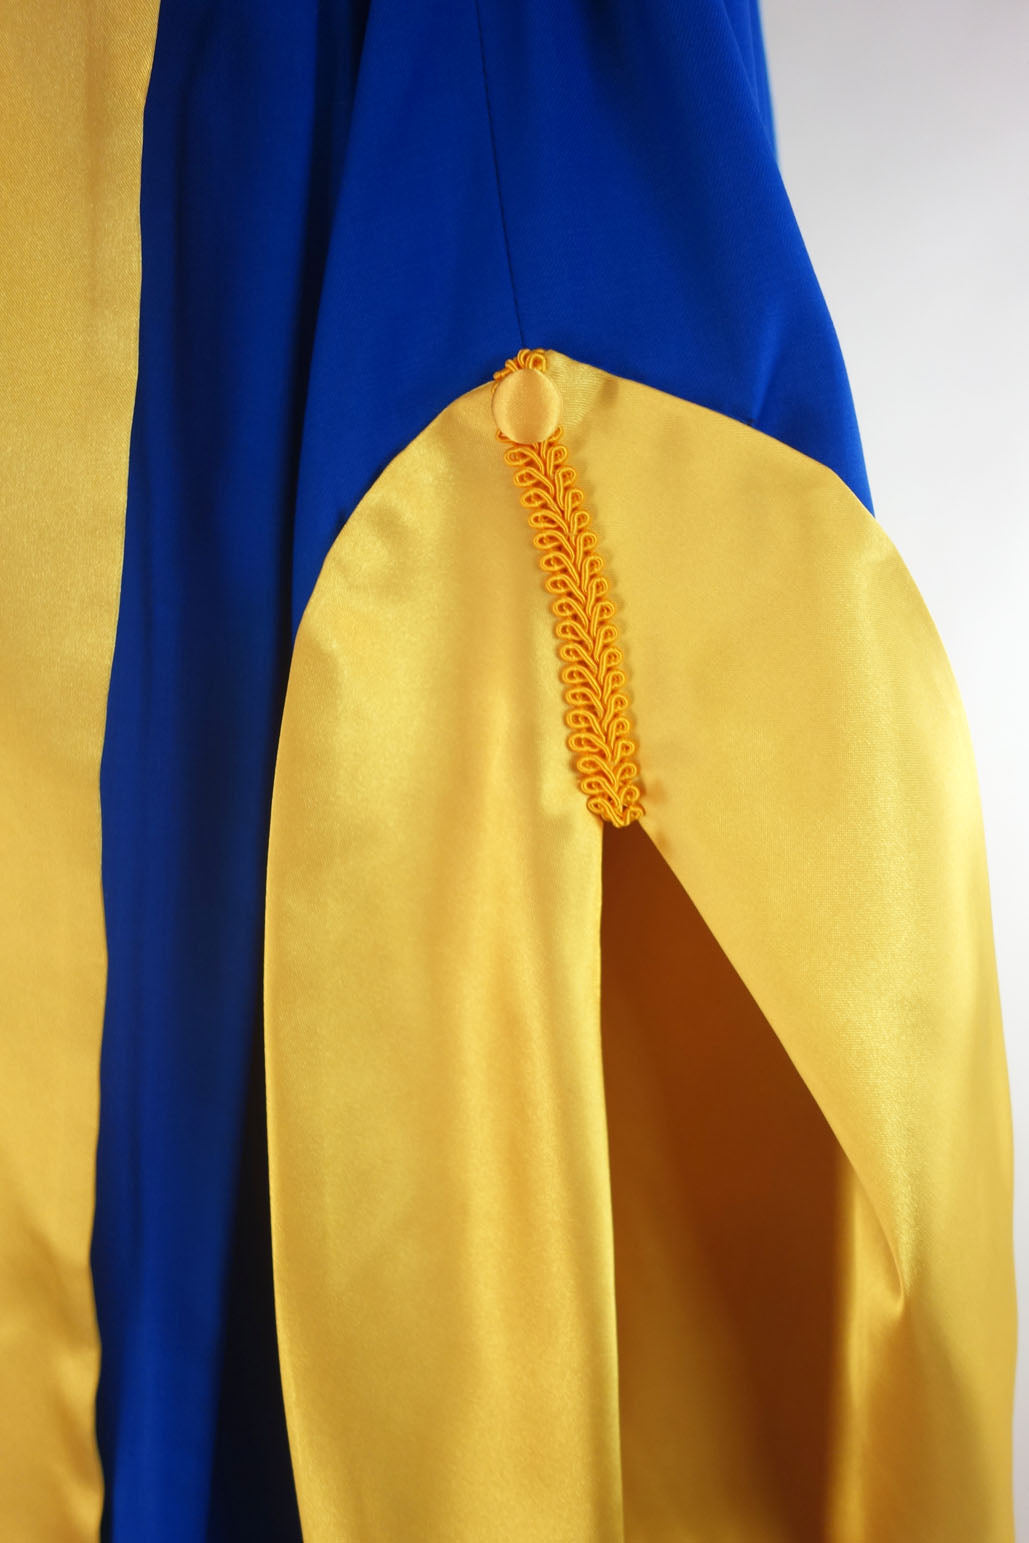 University of Canberra PhD Graduation Gown Suite